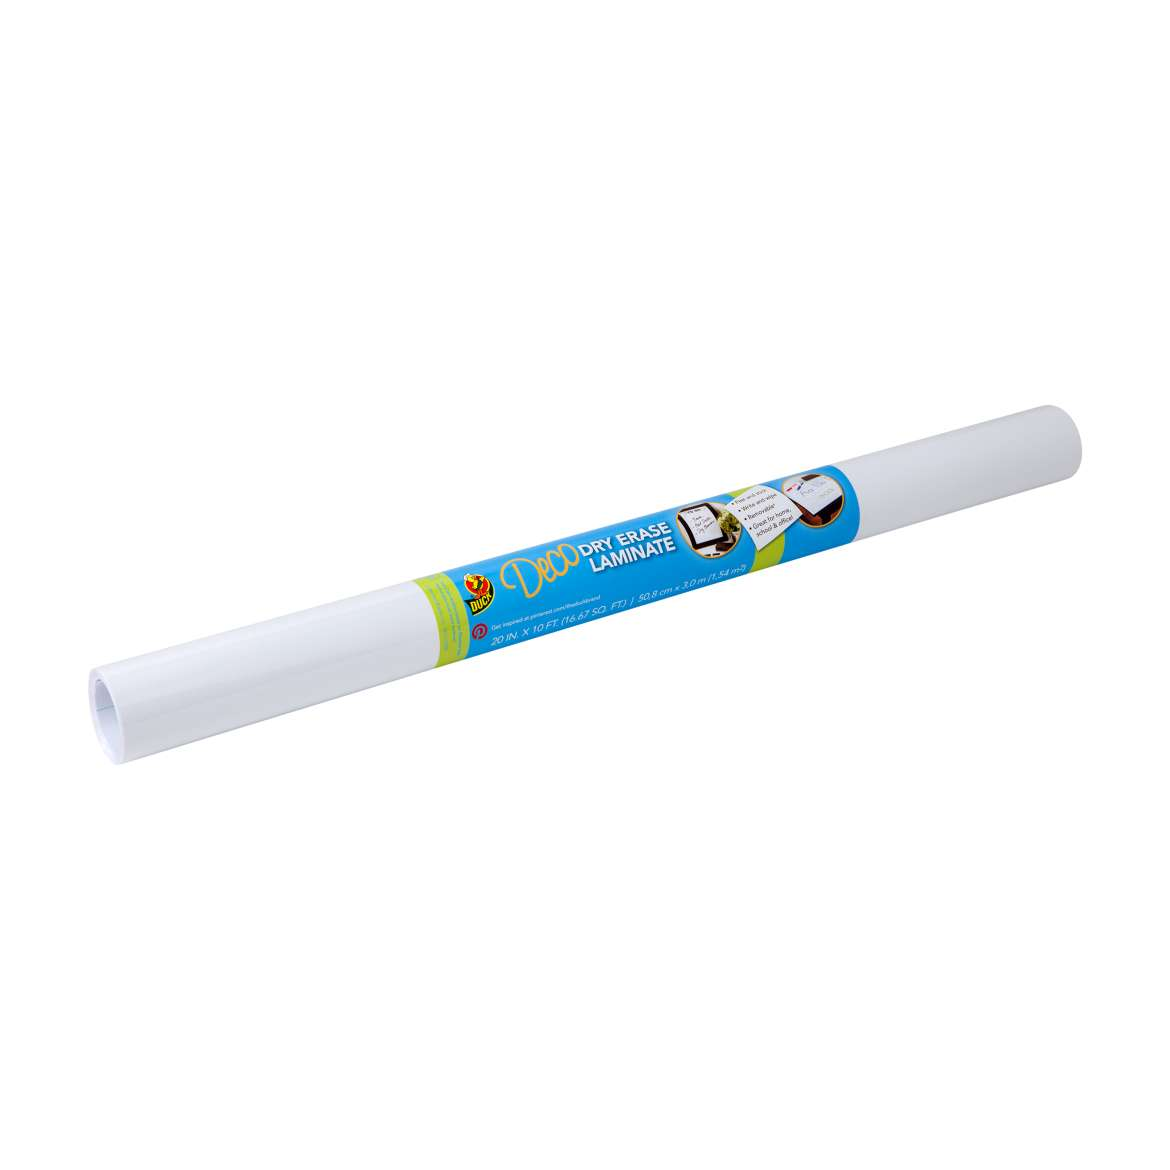 Duck® Brand Deco Adhesive Laminate - Dry Erase, 20 in. x 10 ft. Image